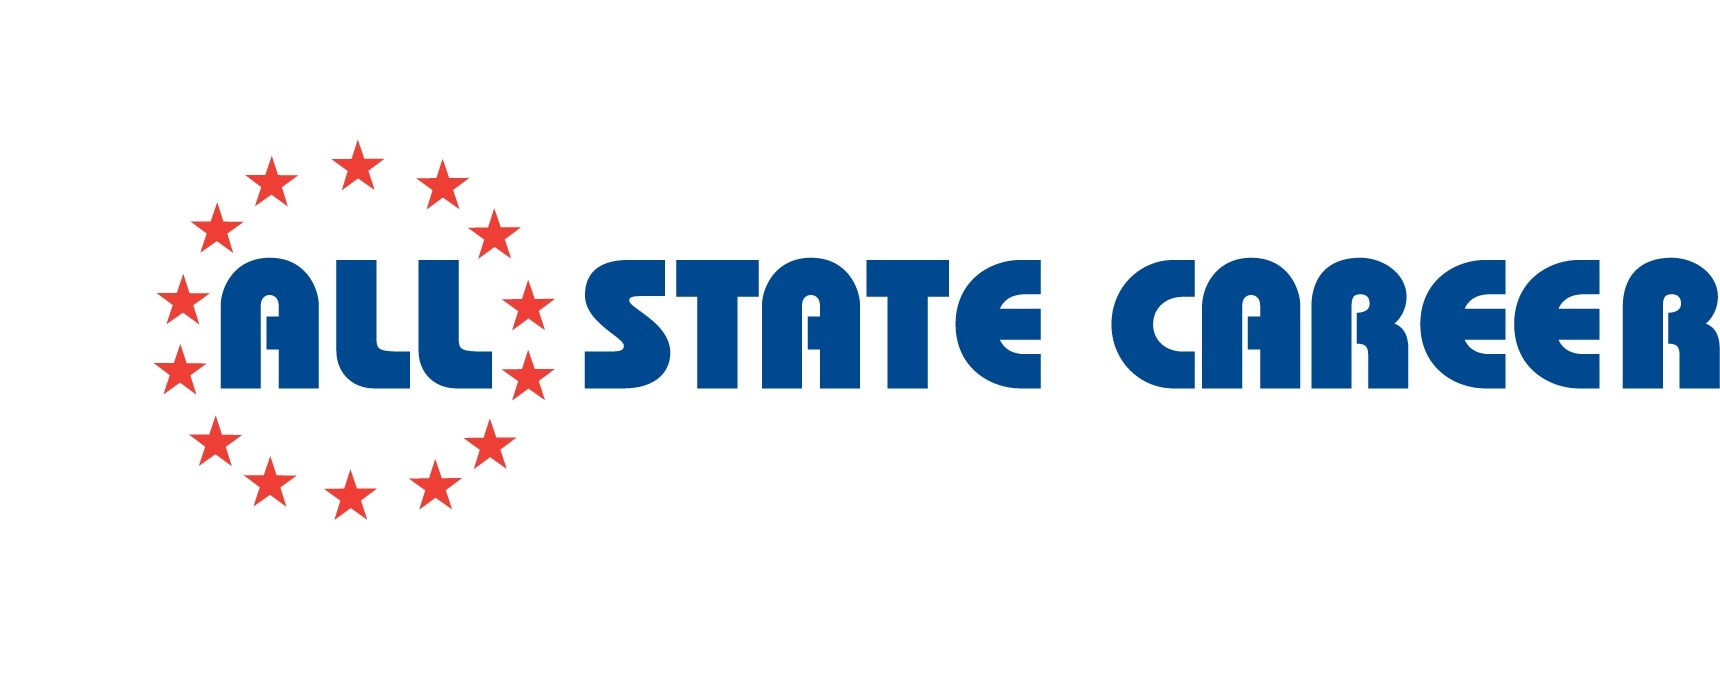 All-State Career coupon code